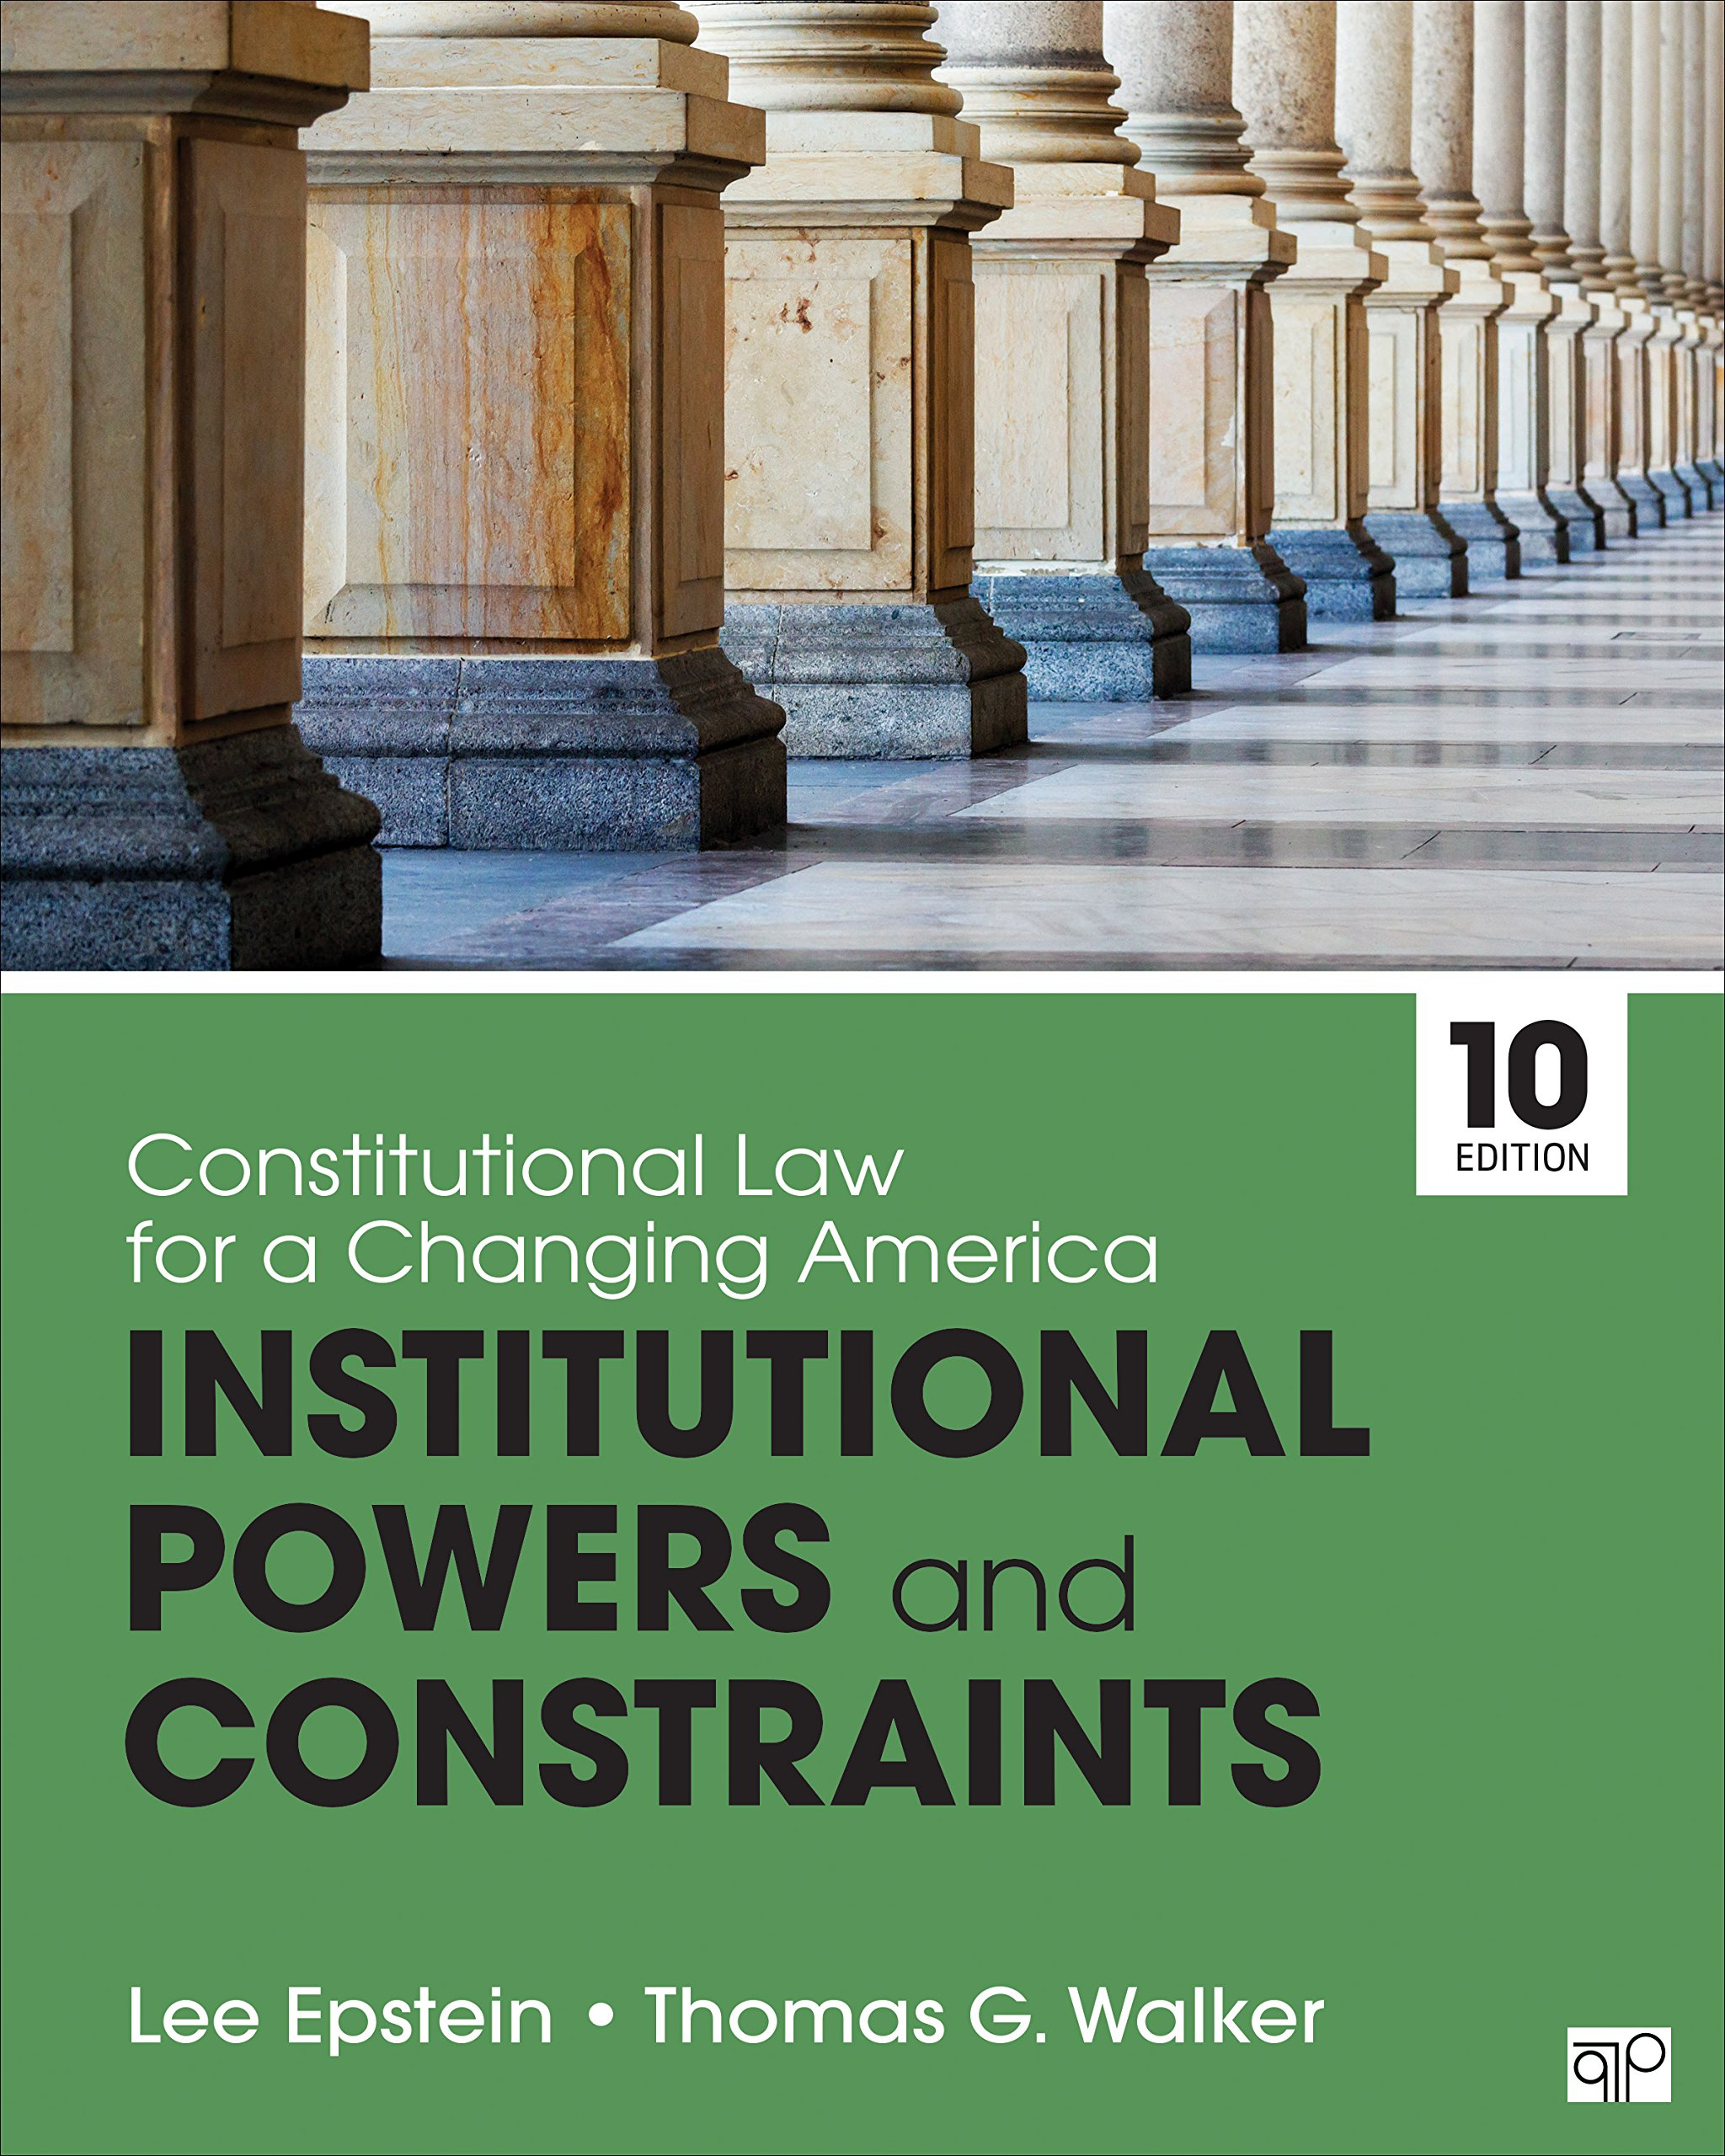 Constitutional Law for a Changing America: Institutional Powers and Constraints by CQ Press